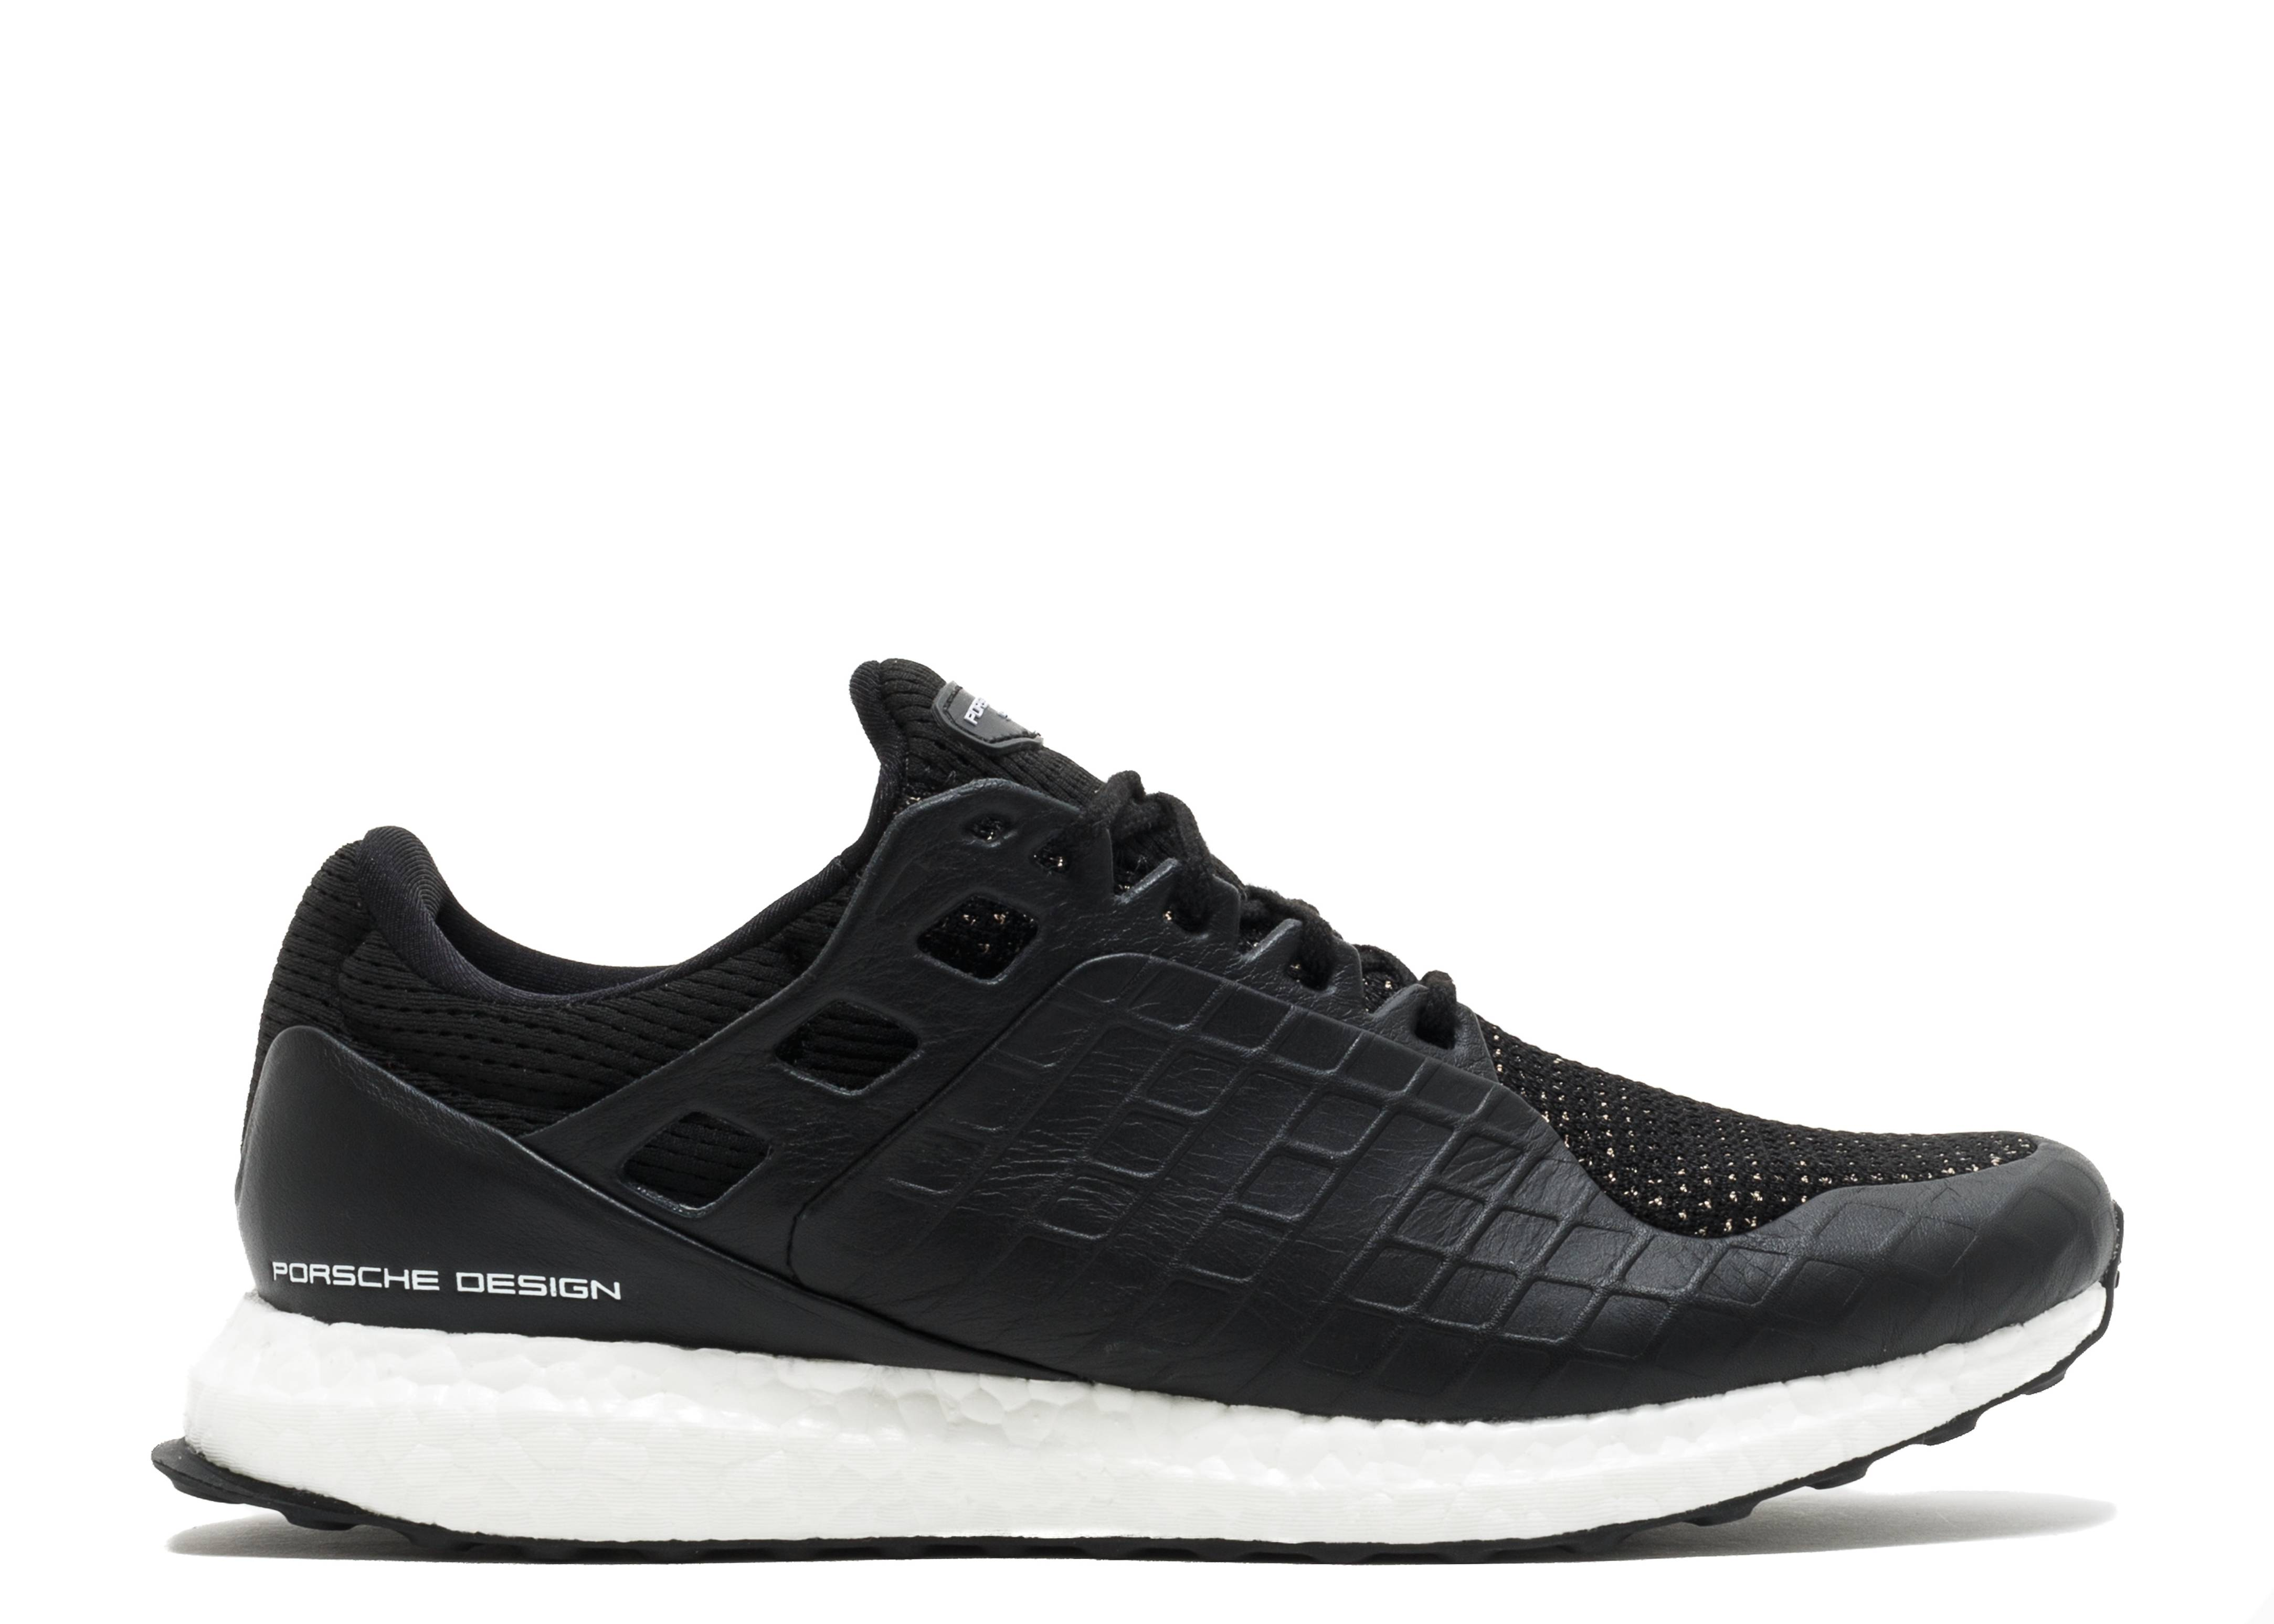 8c5990dad02 Pds Ultra Boost Tra